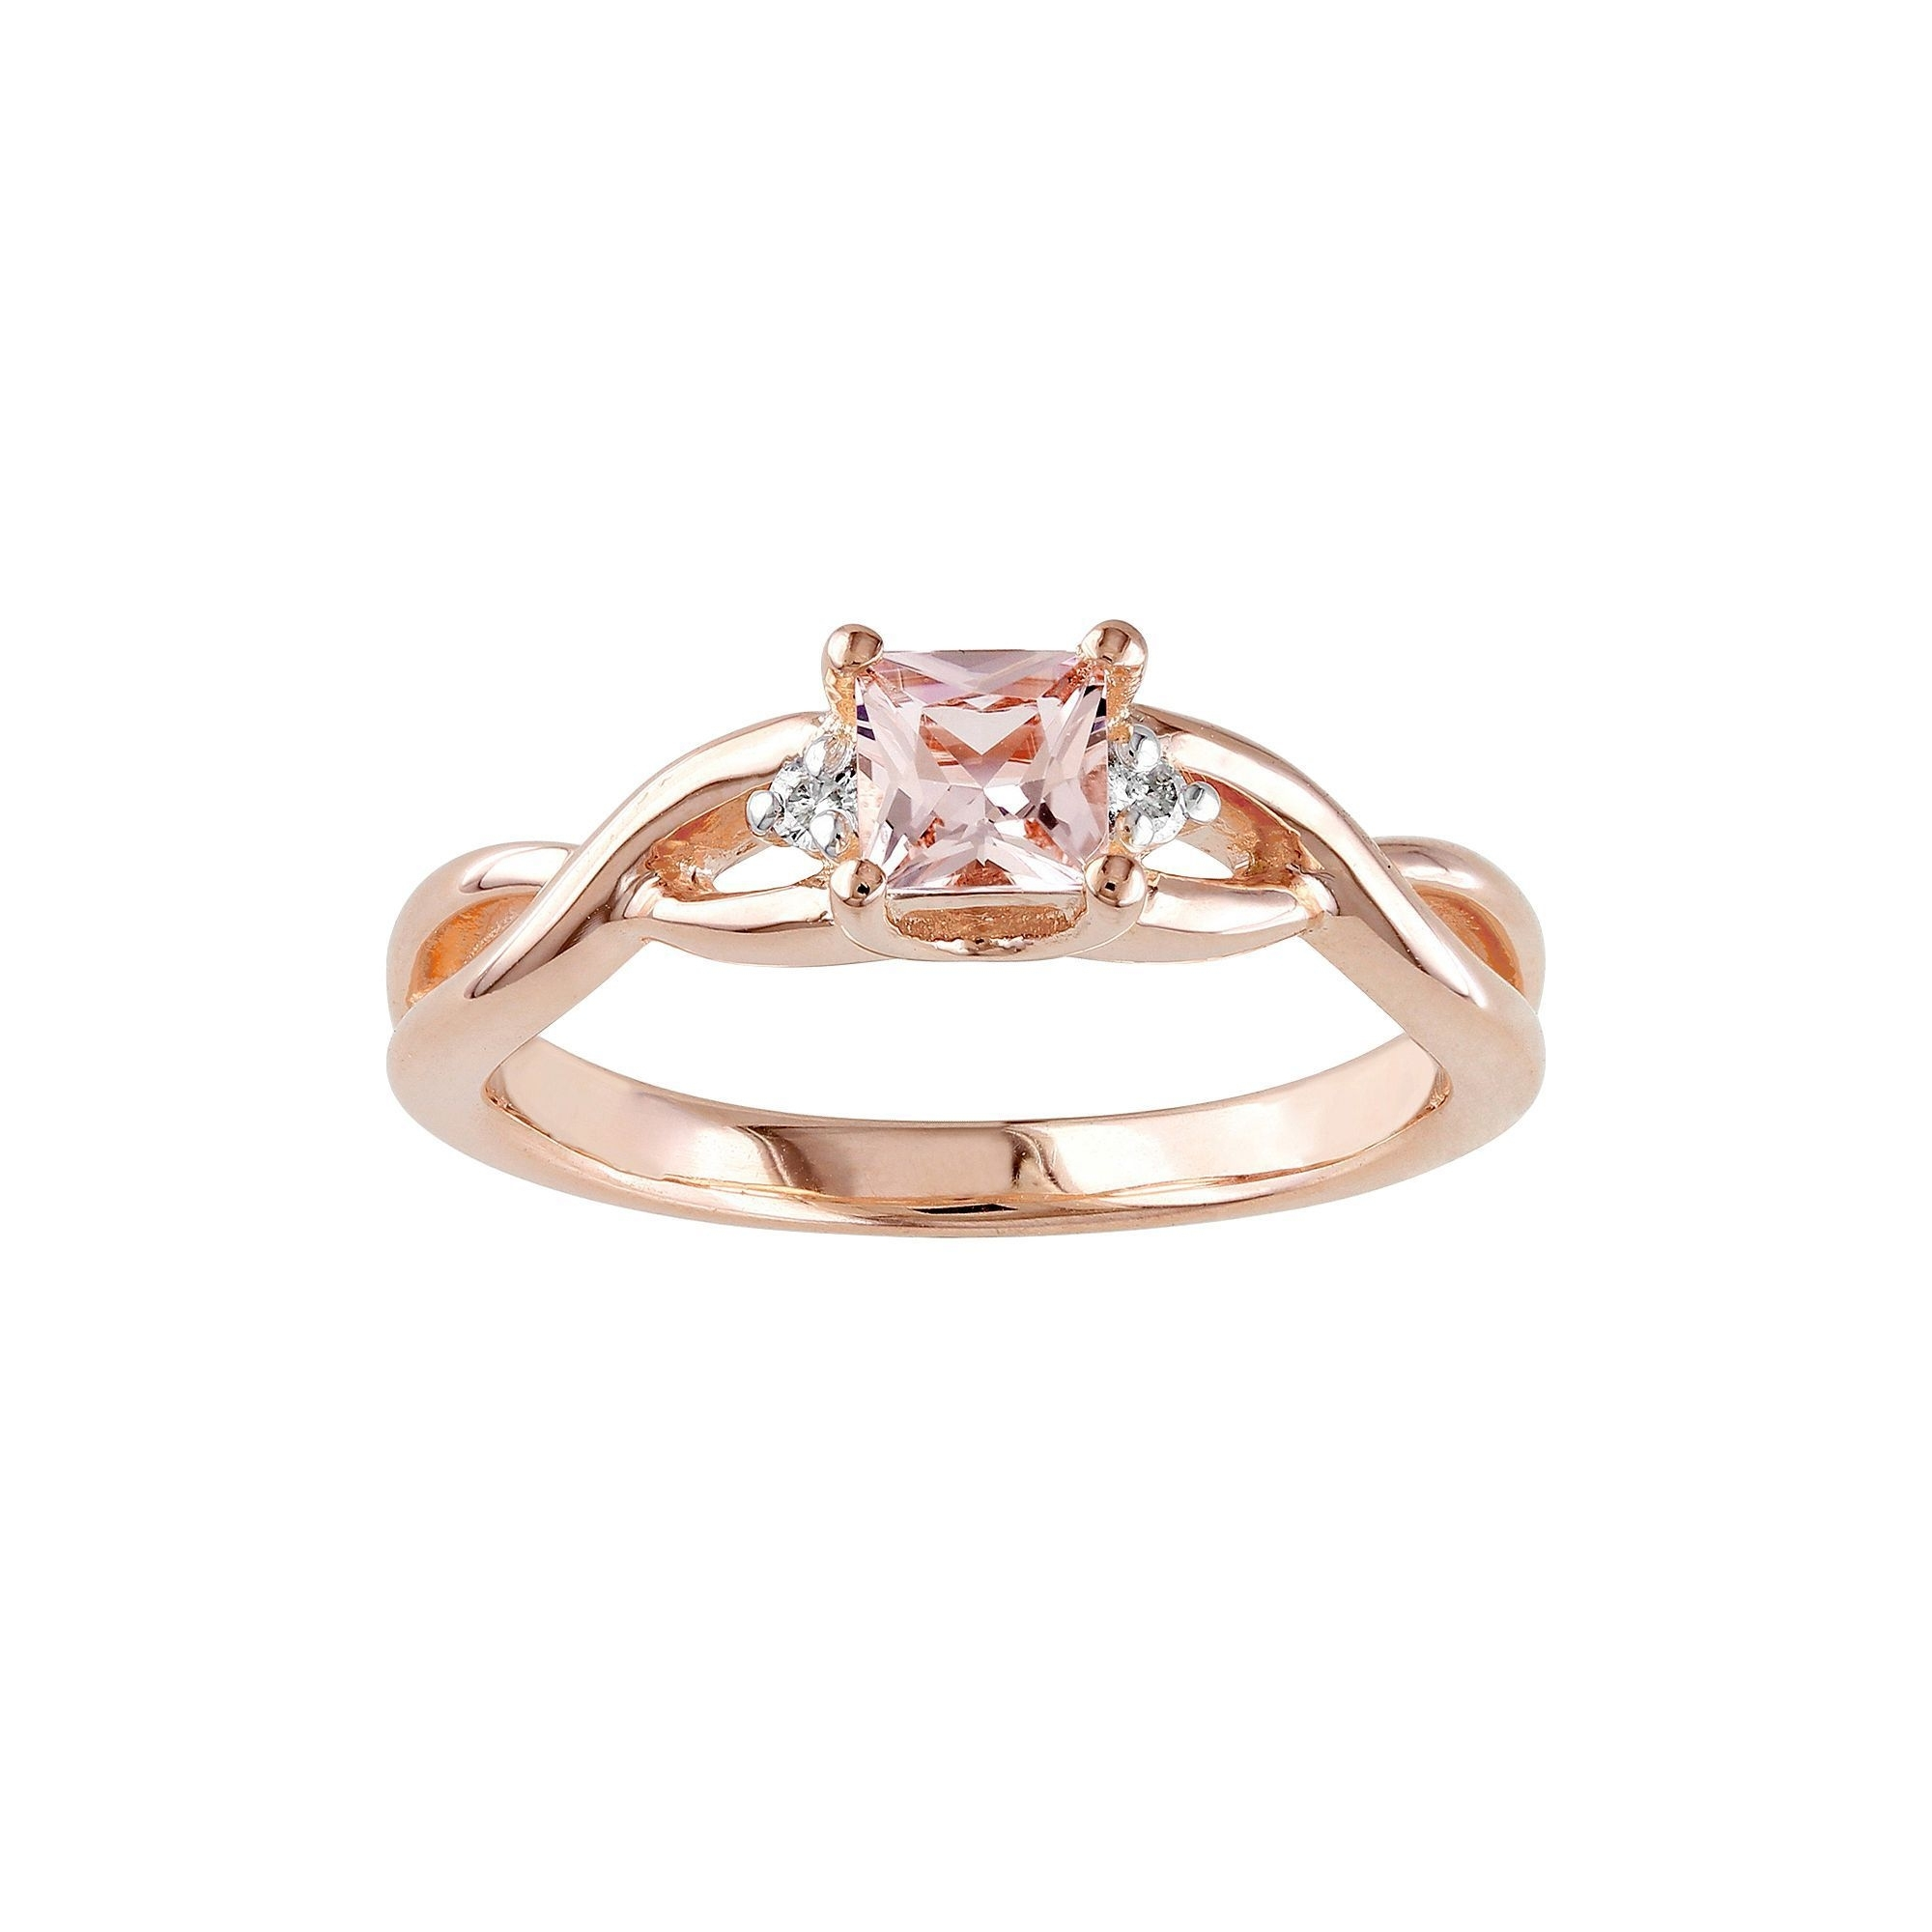 Elegant Diamond Infinity Rings Within Stella Grace Rose Rhodium Intended For Newest Diamond Wedding Bands In Sterling Silver With Rose Rhodium (View 8 of 15)